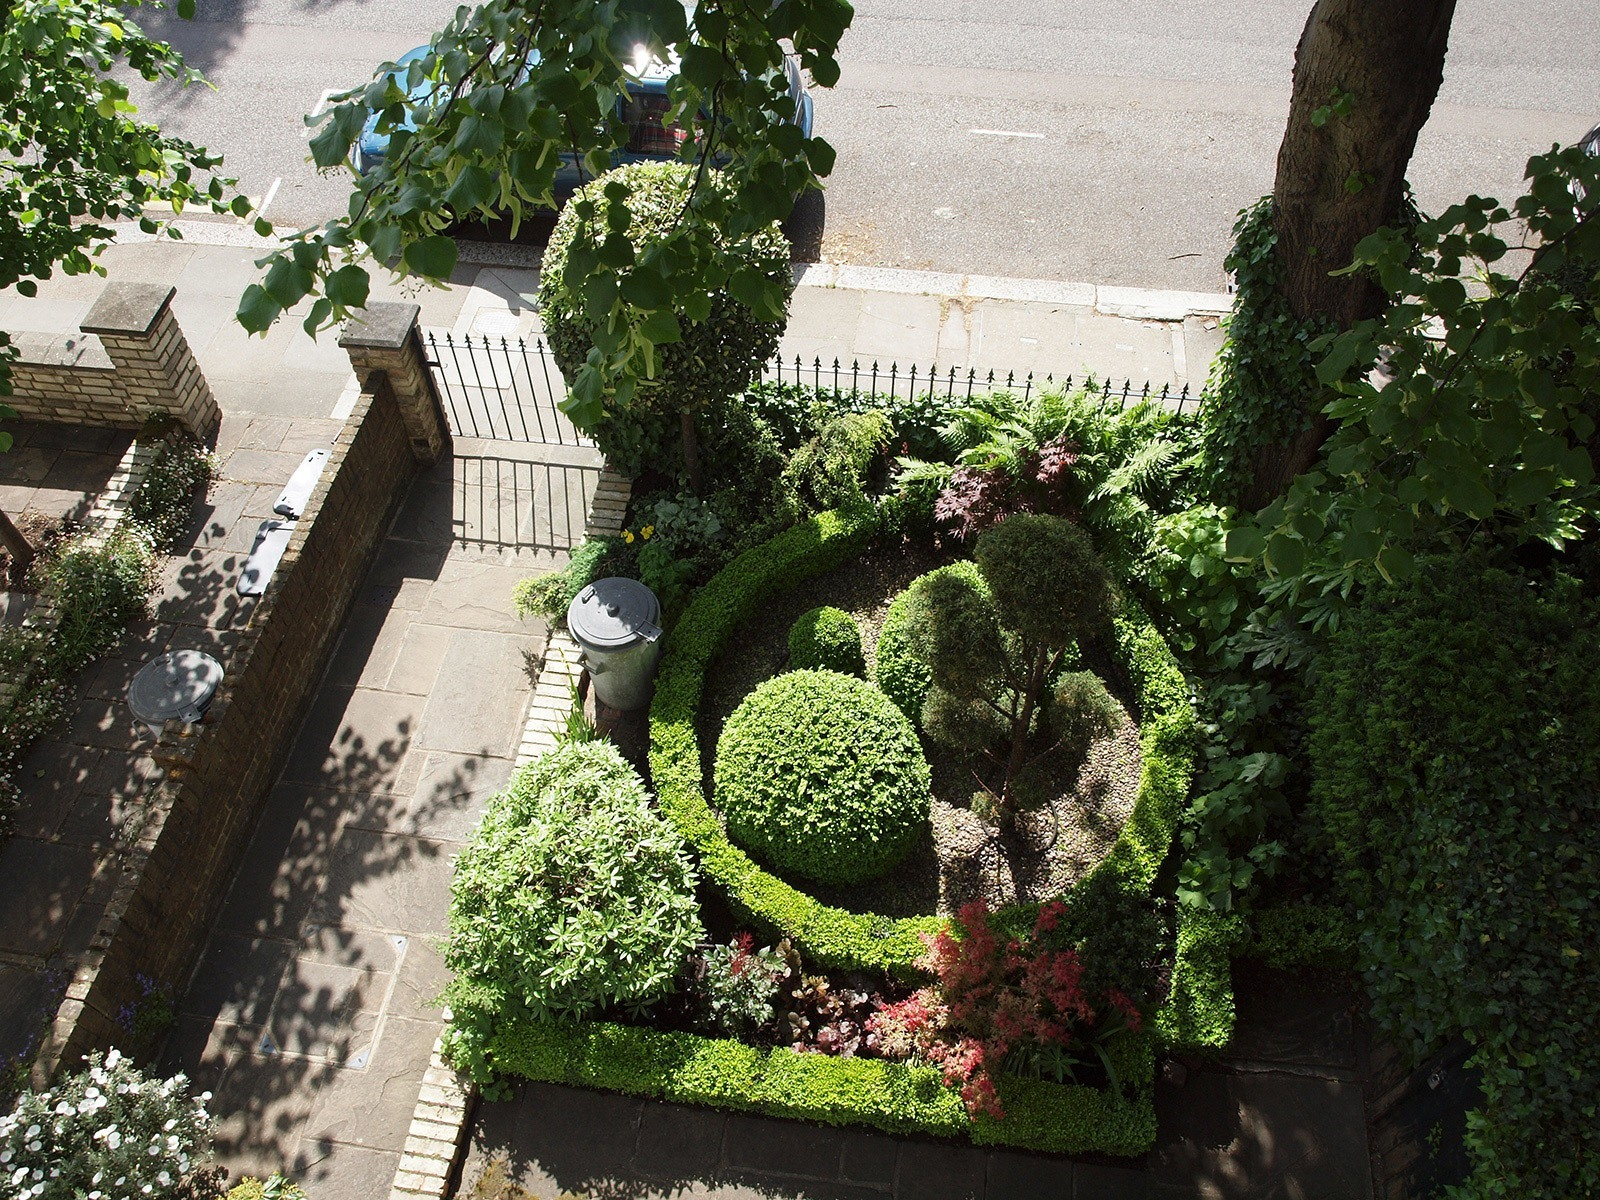 The view from the first floor reveals a modern take on a traditional parterre.